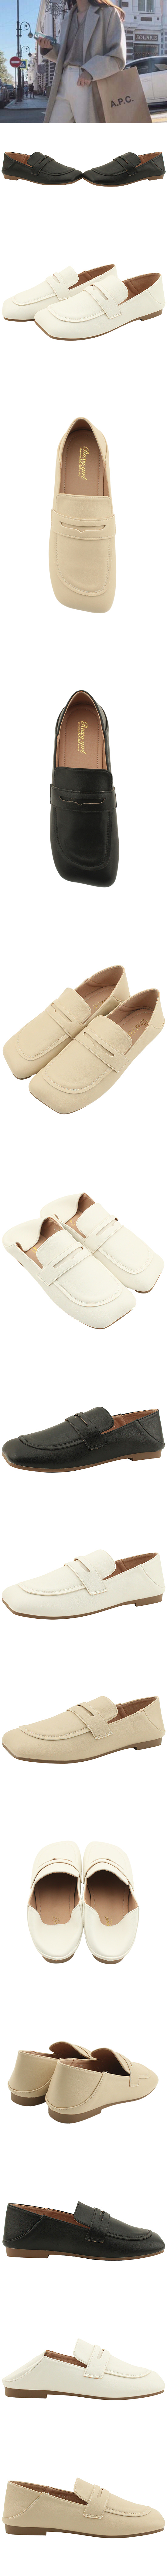 Square Toe Babuche Penny Loafers Beige